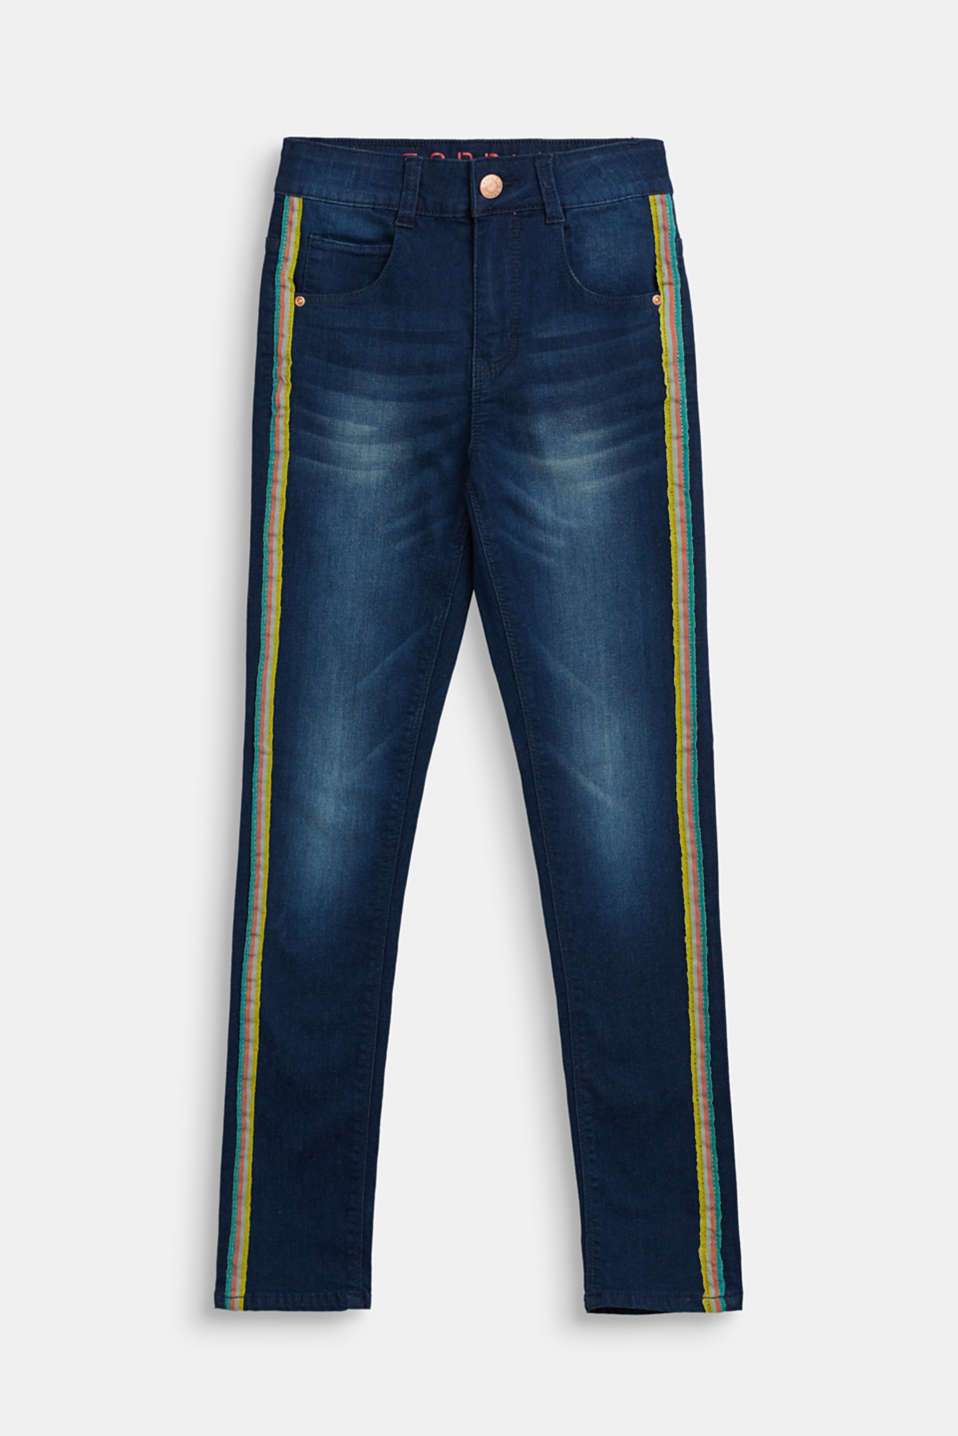 Esprit - Super stretch jeans with racing stripes